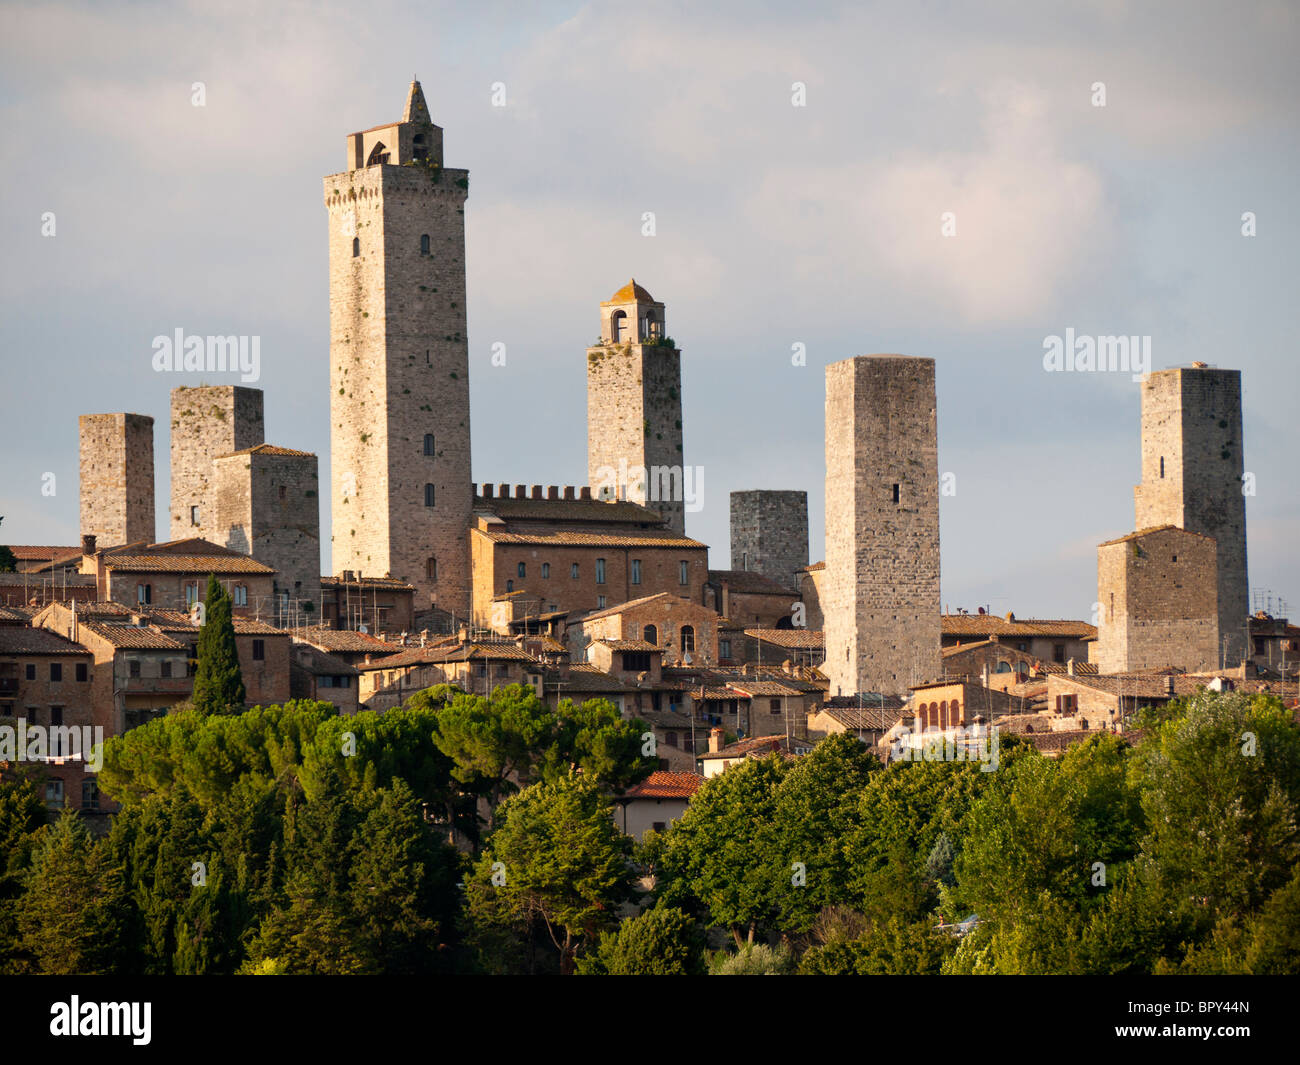 san gimignano in tuscany italy mediaval tuscan town. Black Bedroom Furniture Sets. Home Design Ideas